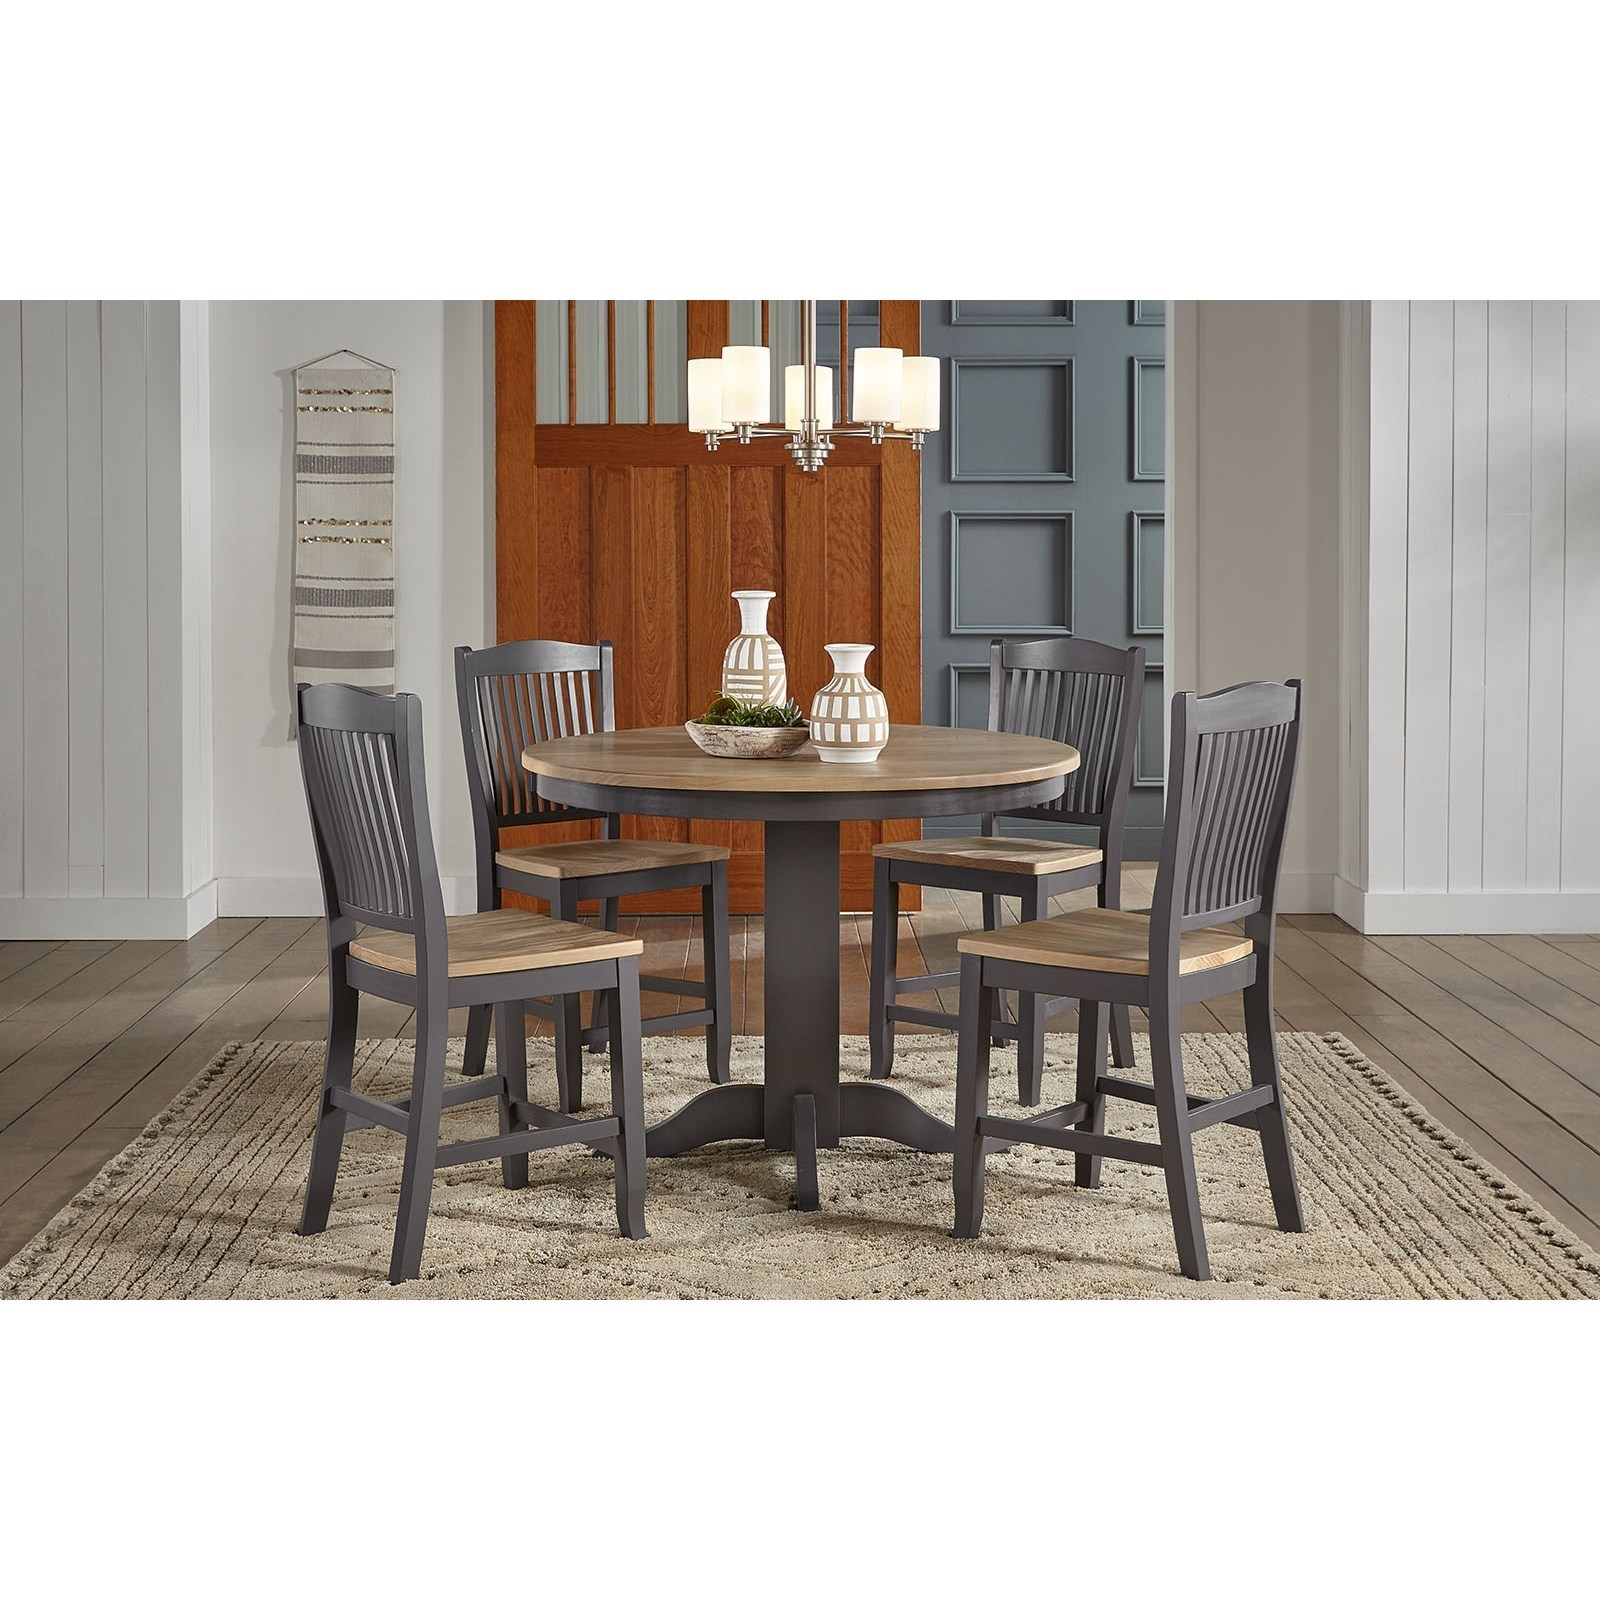 5-Piece Round Gathering Height Table and Chair Set